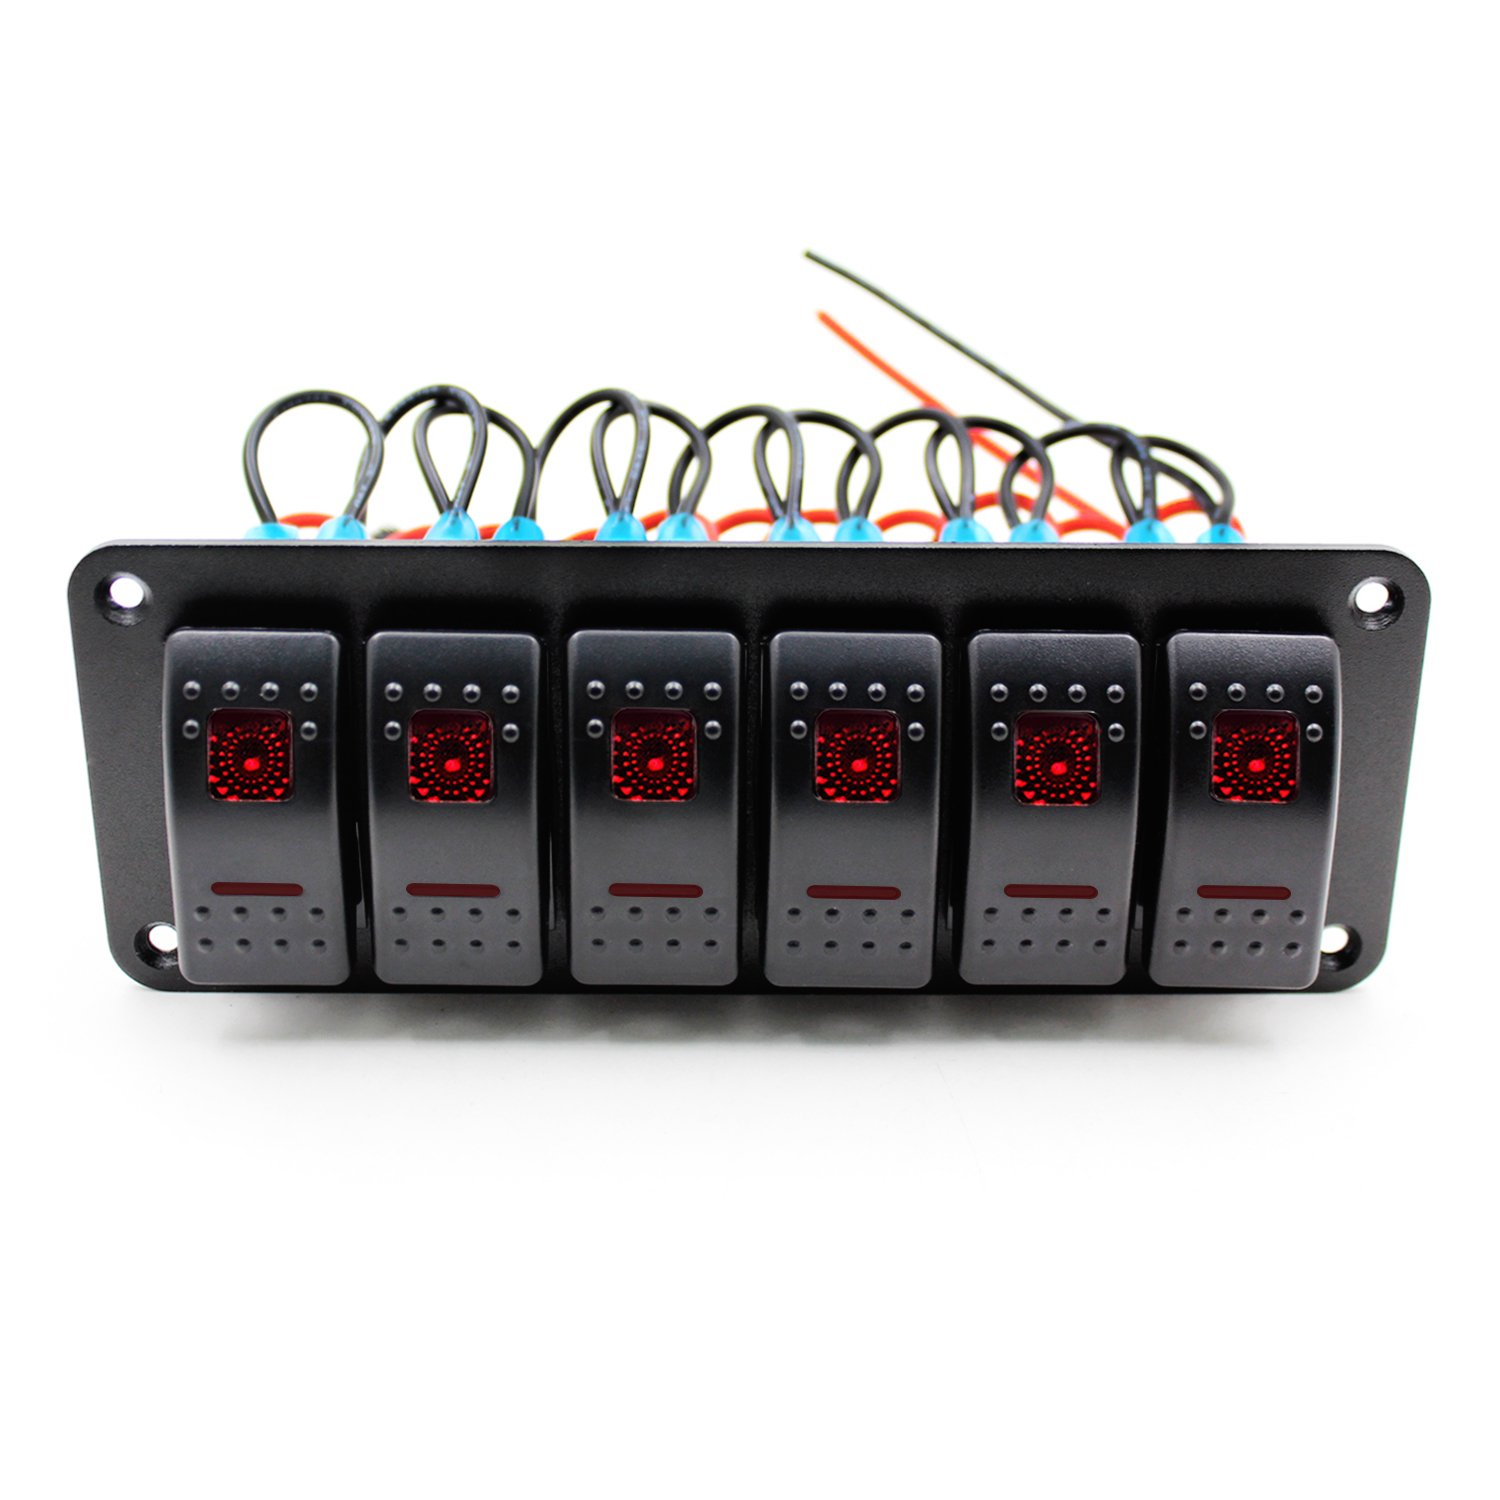 Fxc Rocker Switch Aluminum Panel 6 Gang Toggle Switches Dash 5 Pin Red Led On Off For Car Truck Suv